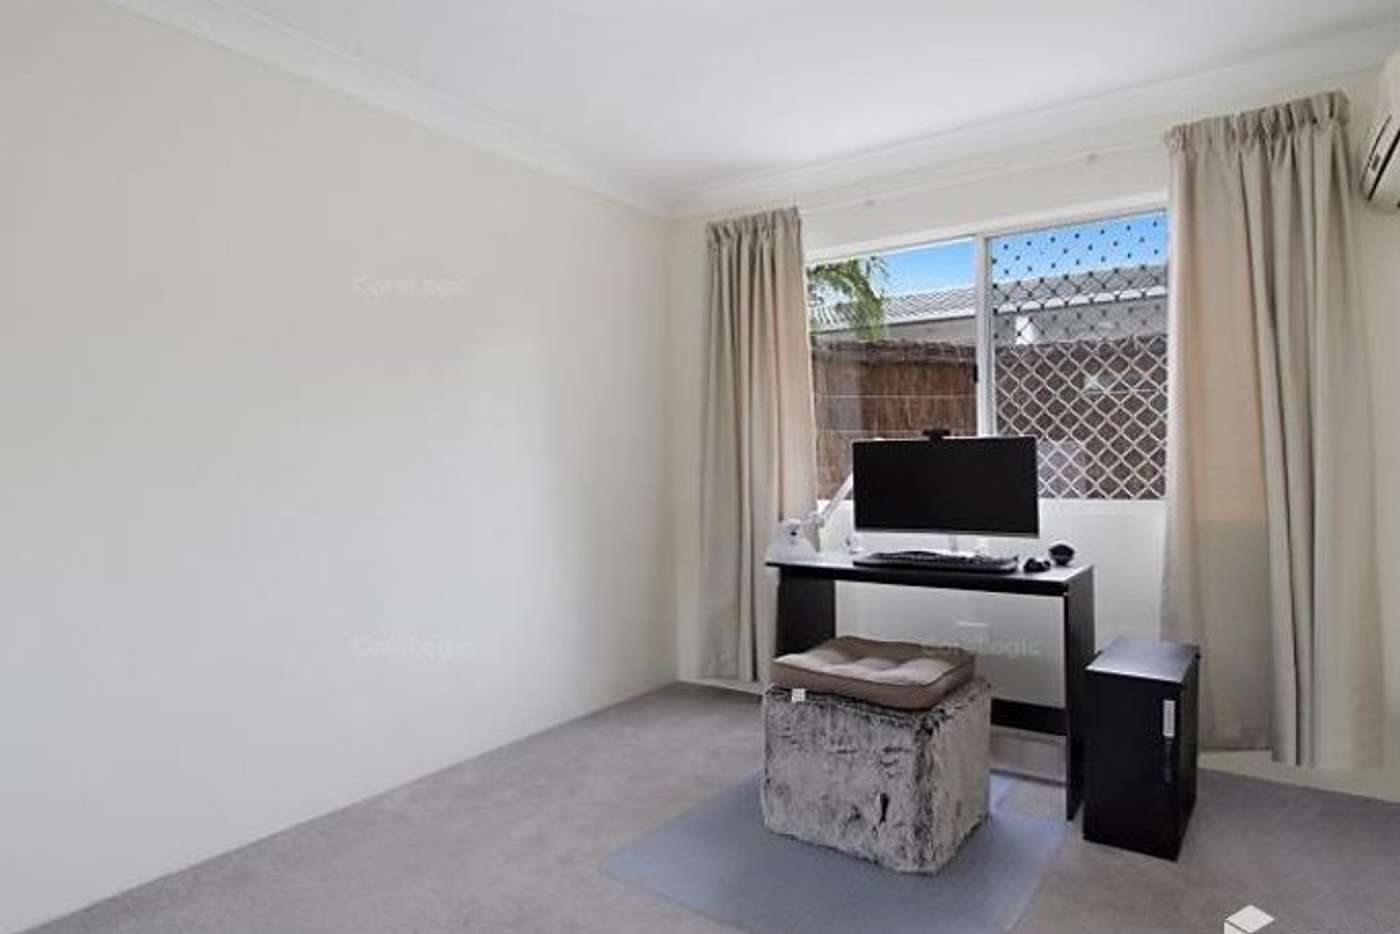 Sixth view of Homely unit listing, 4/27 Wharf Road, Surfers Paradise QLD 4217